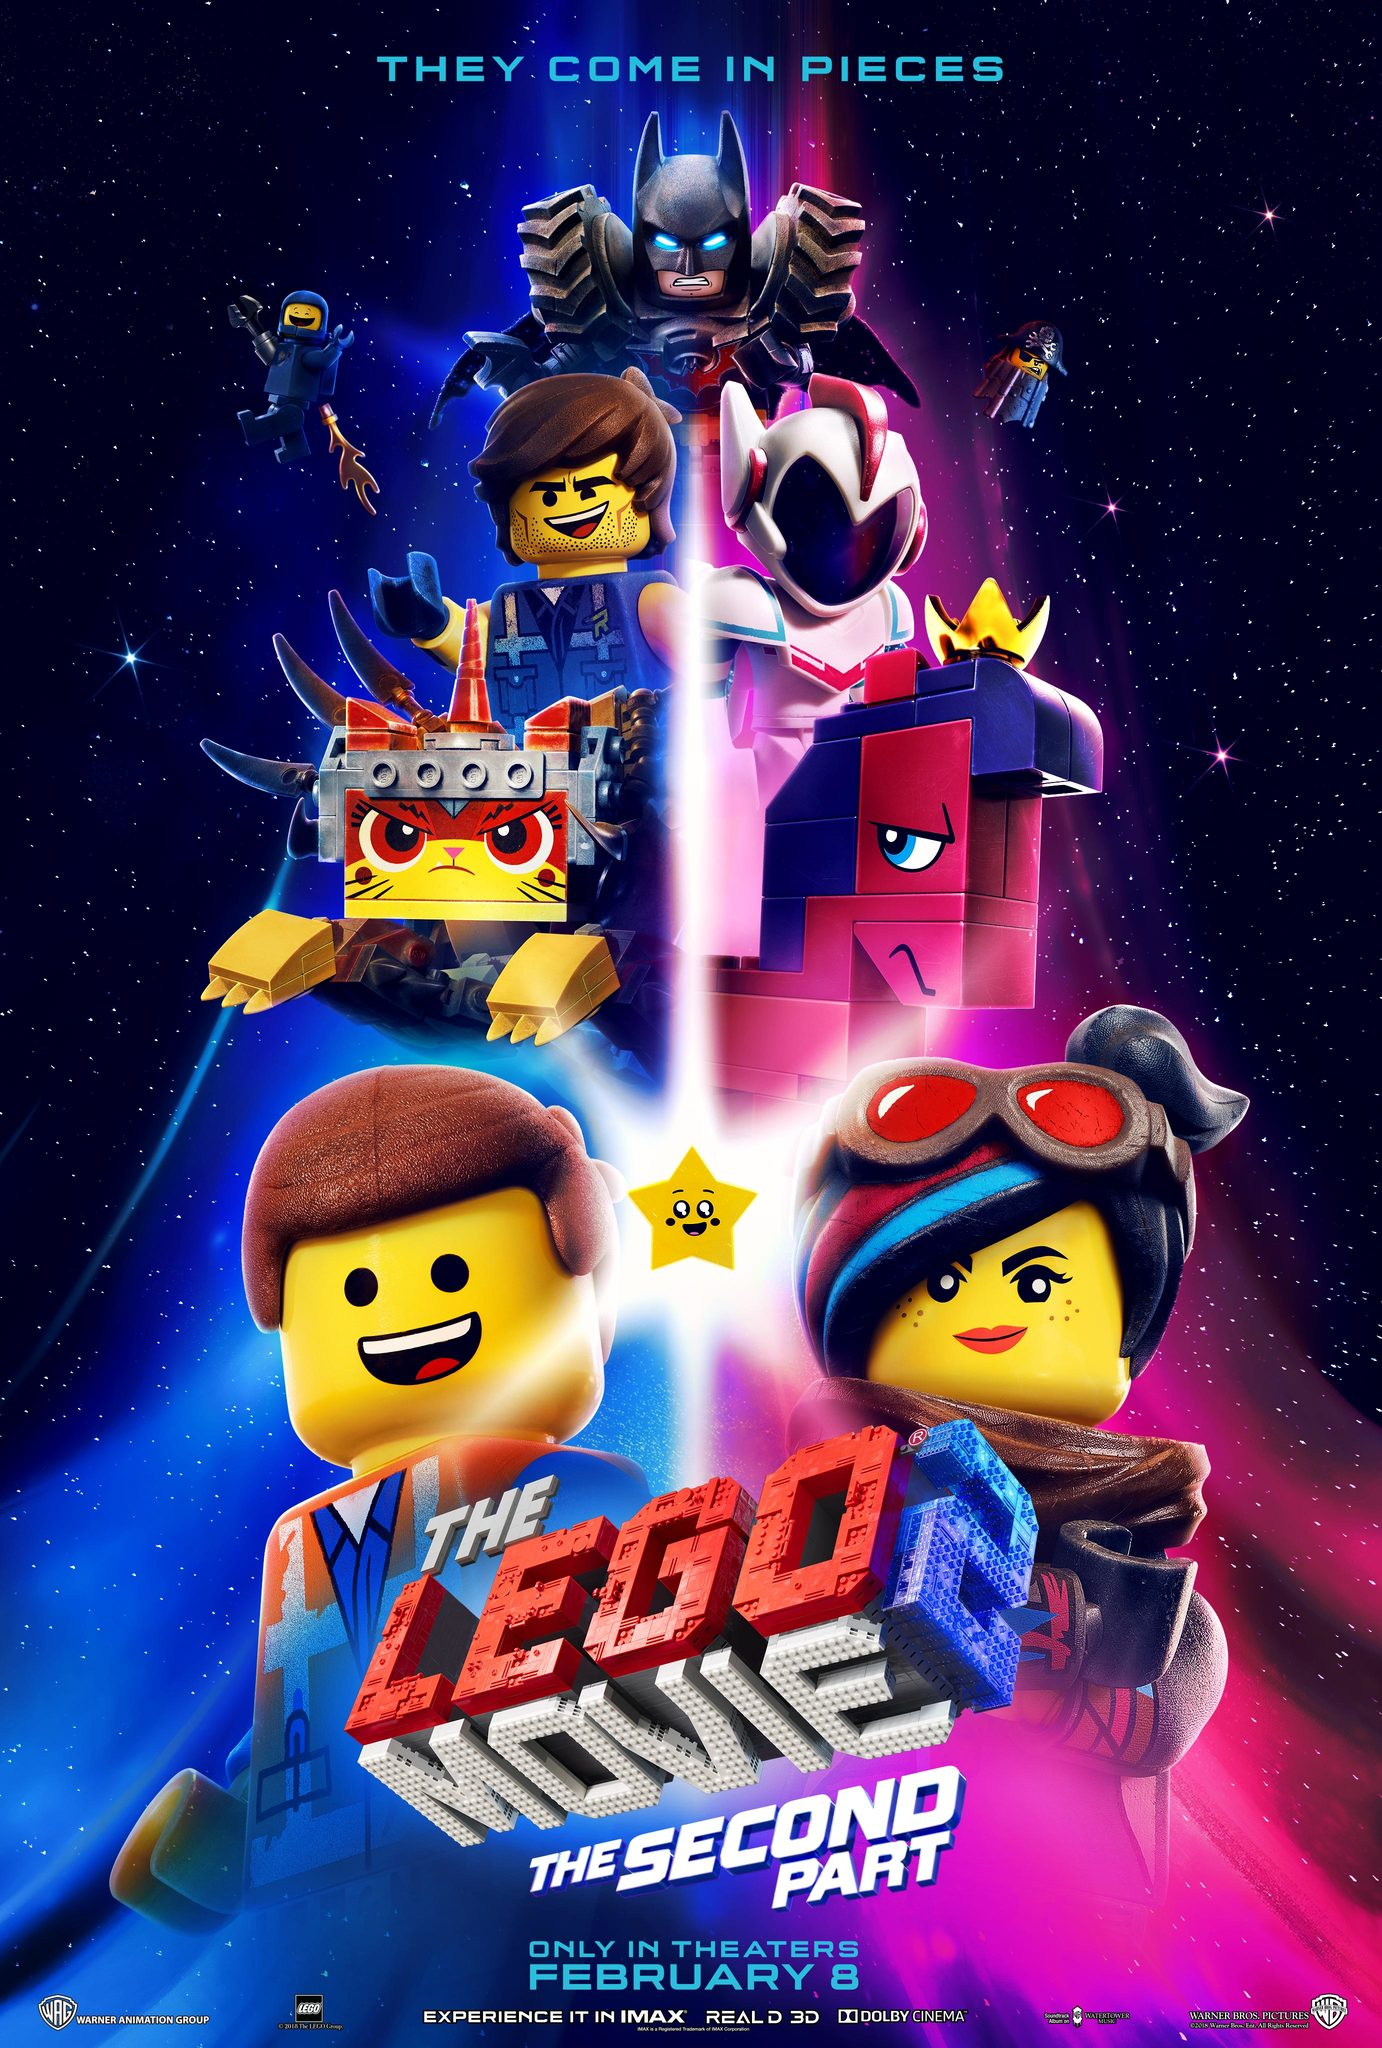 The Lego Movie 2: The Second Part (2019) - IMDb